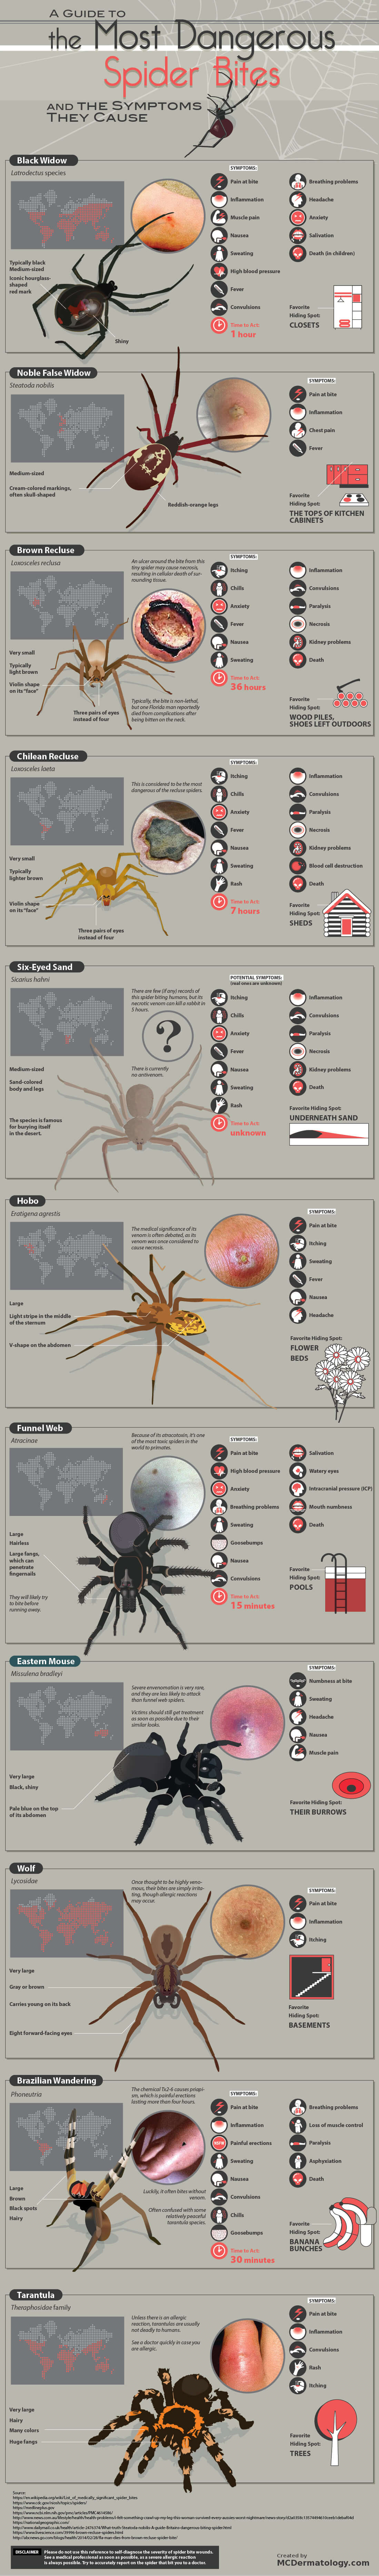 A guide to the most dangerous spider bites and the symptoms they cause